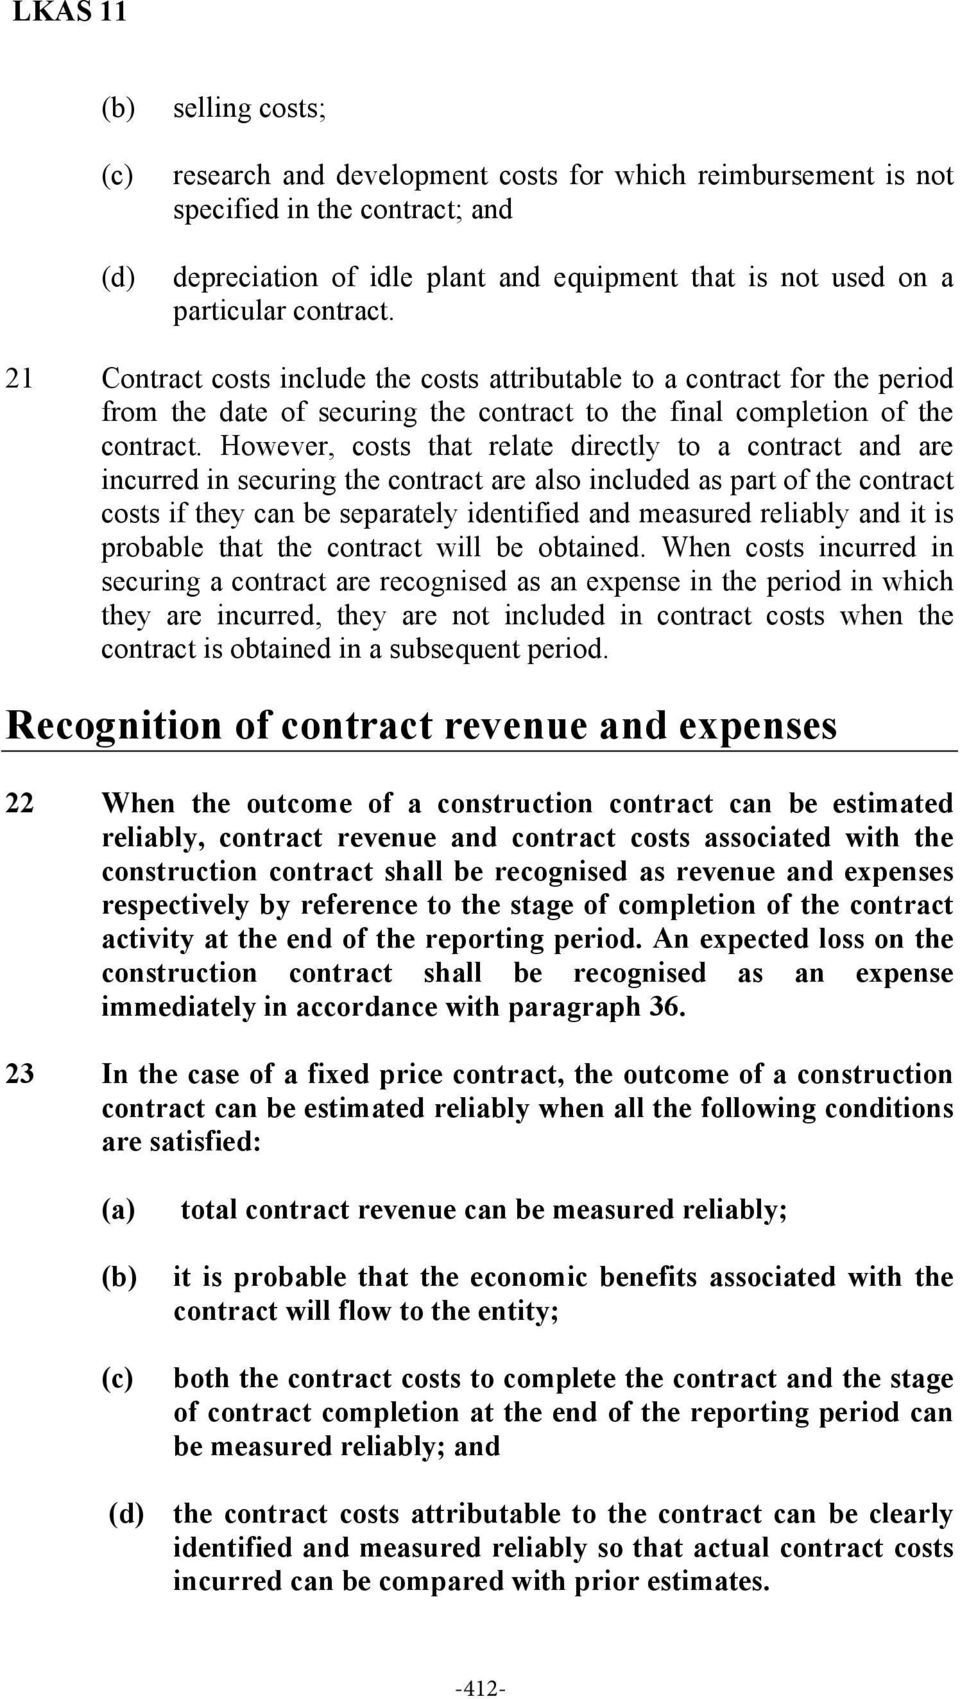 However, costs that relate directly to a contract and are incurred in securing the contract are also included as part of the contract costs if they can be separately identified and measured reliably